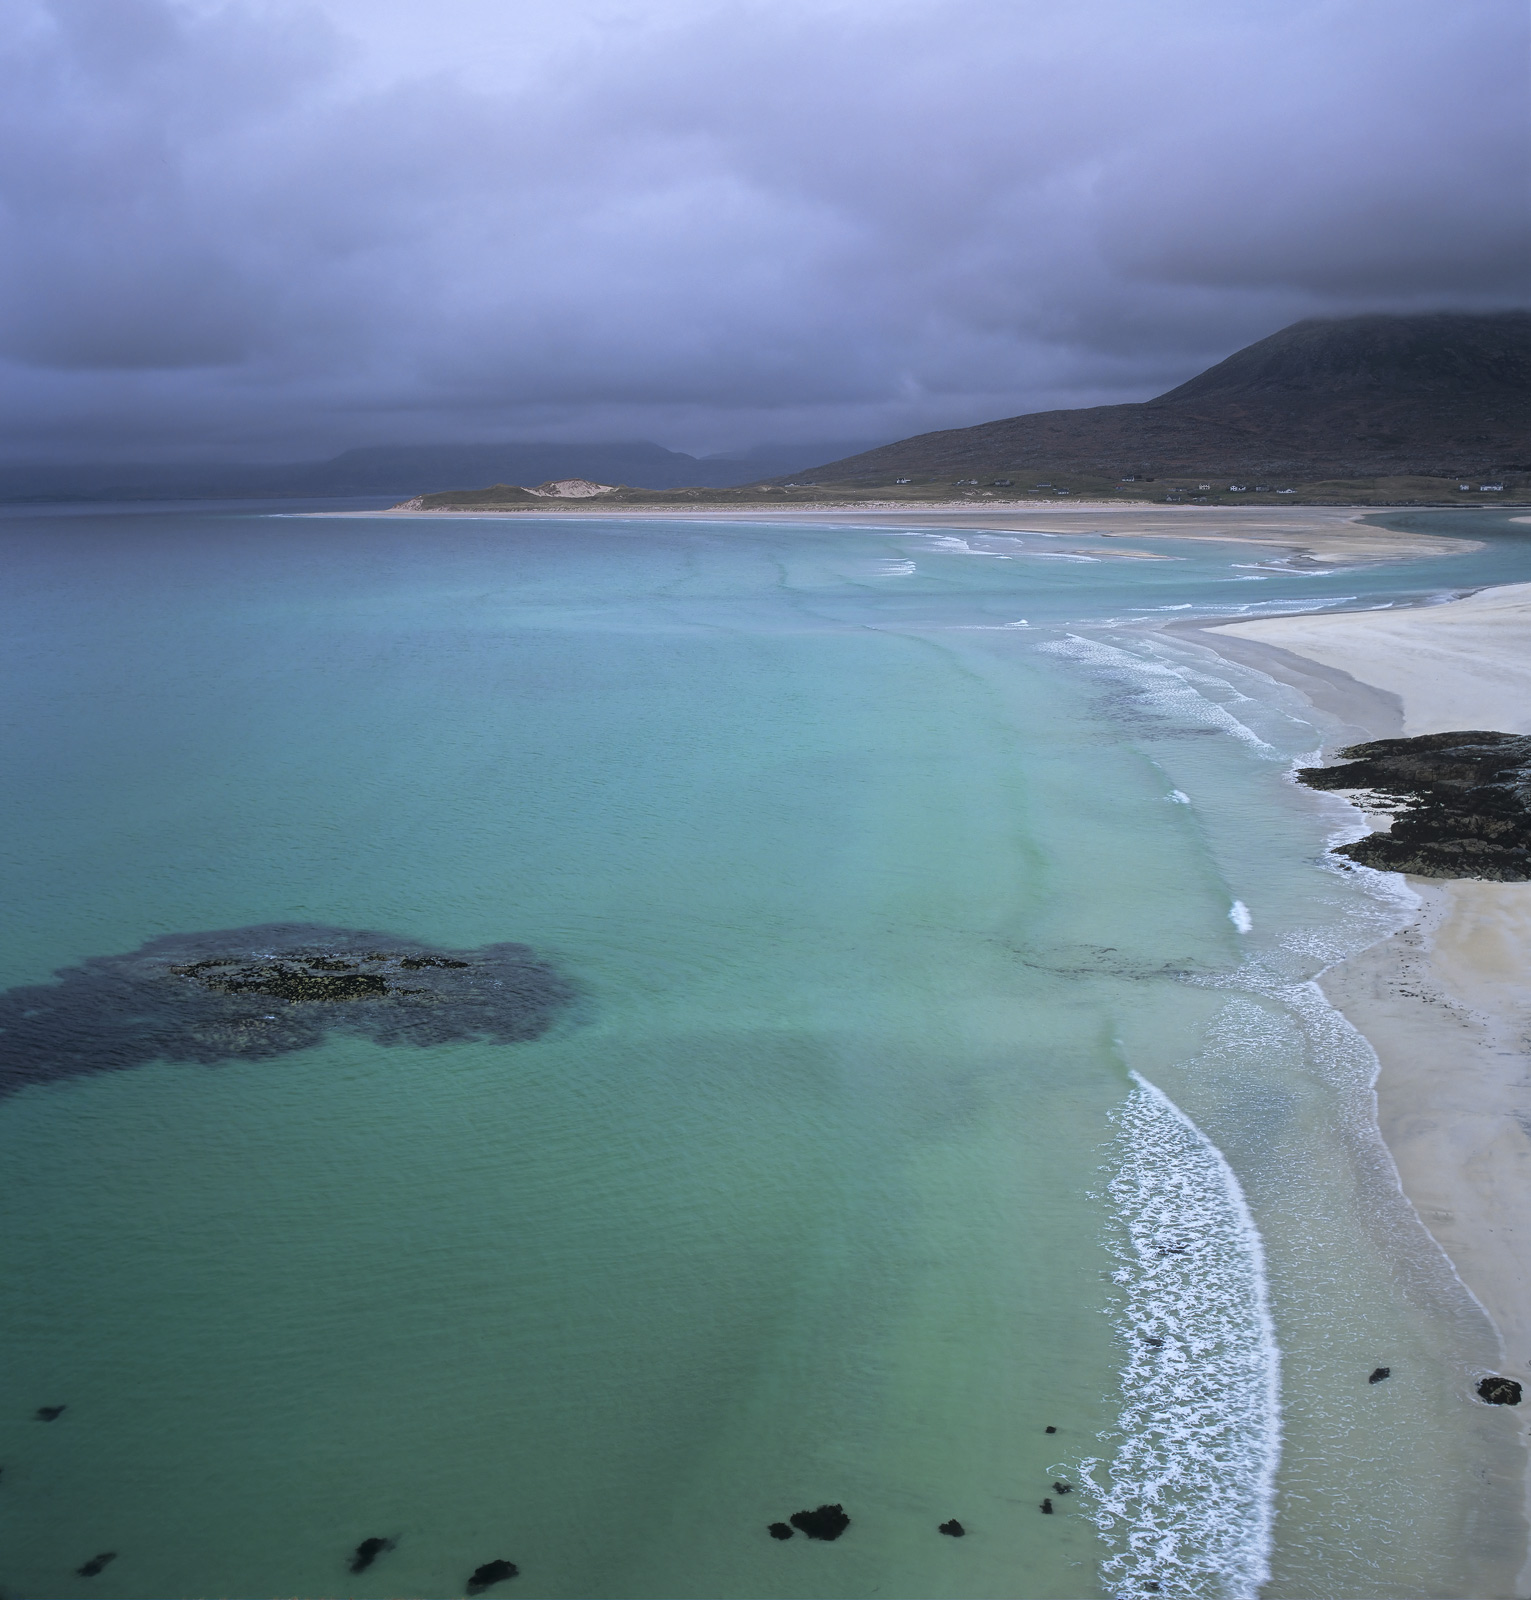 Returning from a trip to Traigh Mhor further along the west coast of Harris the vehicle summited the overlook we were greeted...